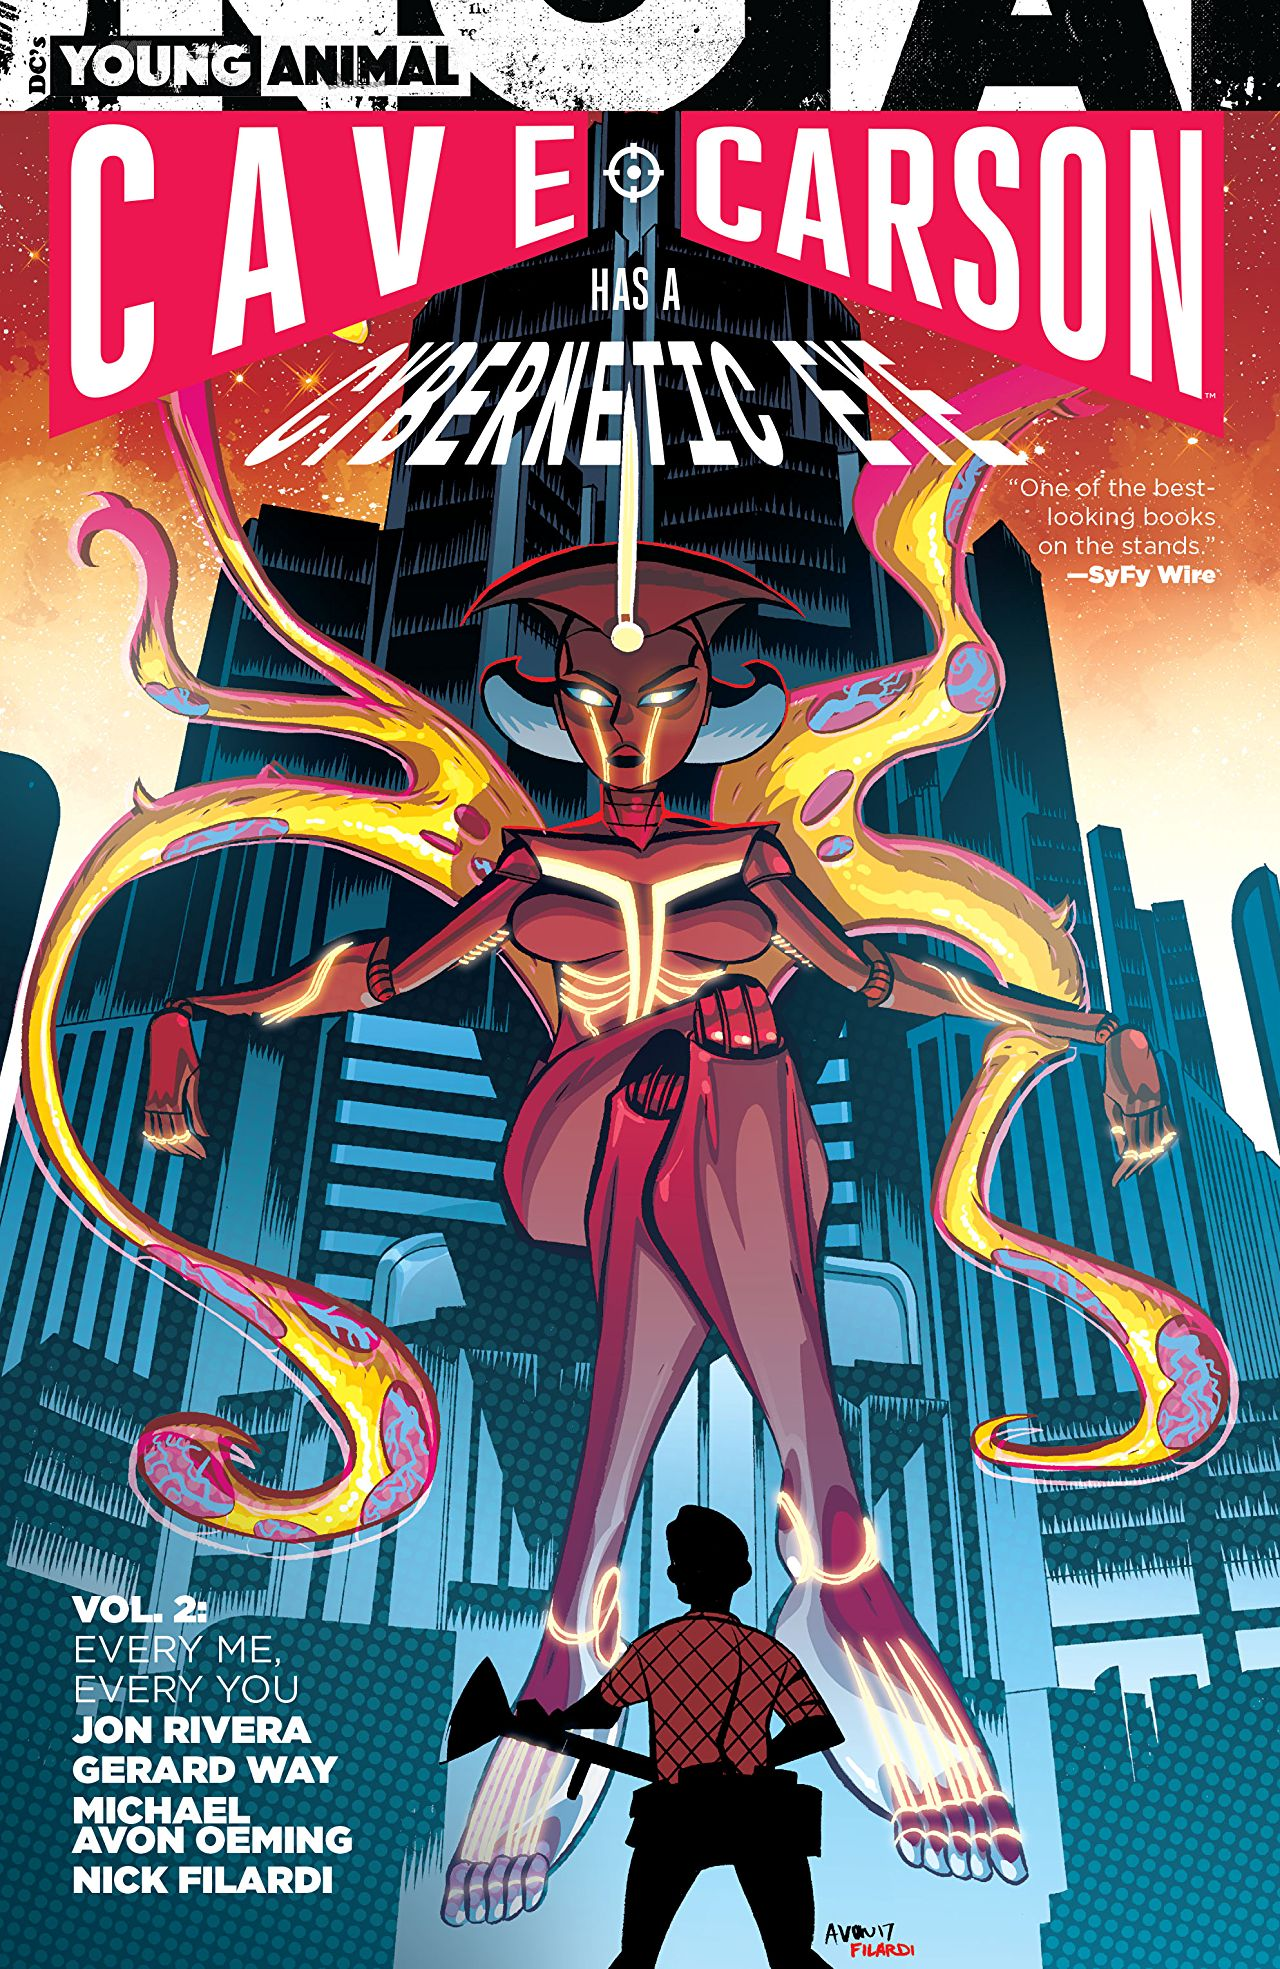 'Cave Carson has a Cybernetic Eye Vol. 2: Every Me, Every You' is extravagant, but largely incoherent